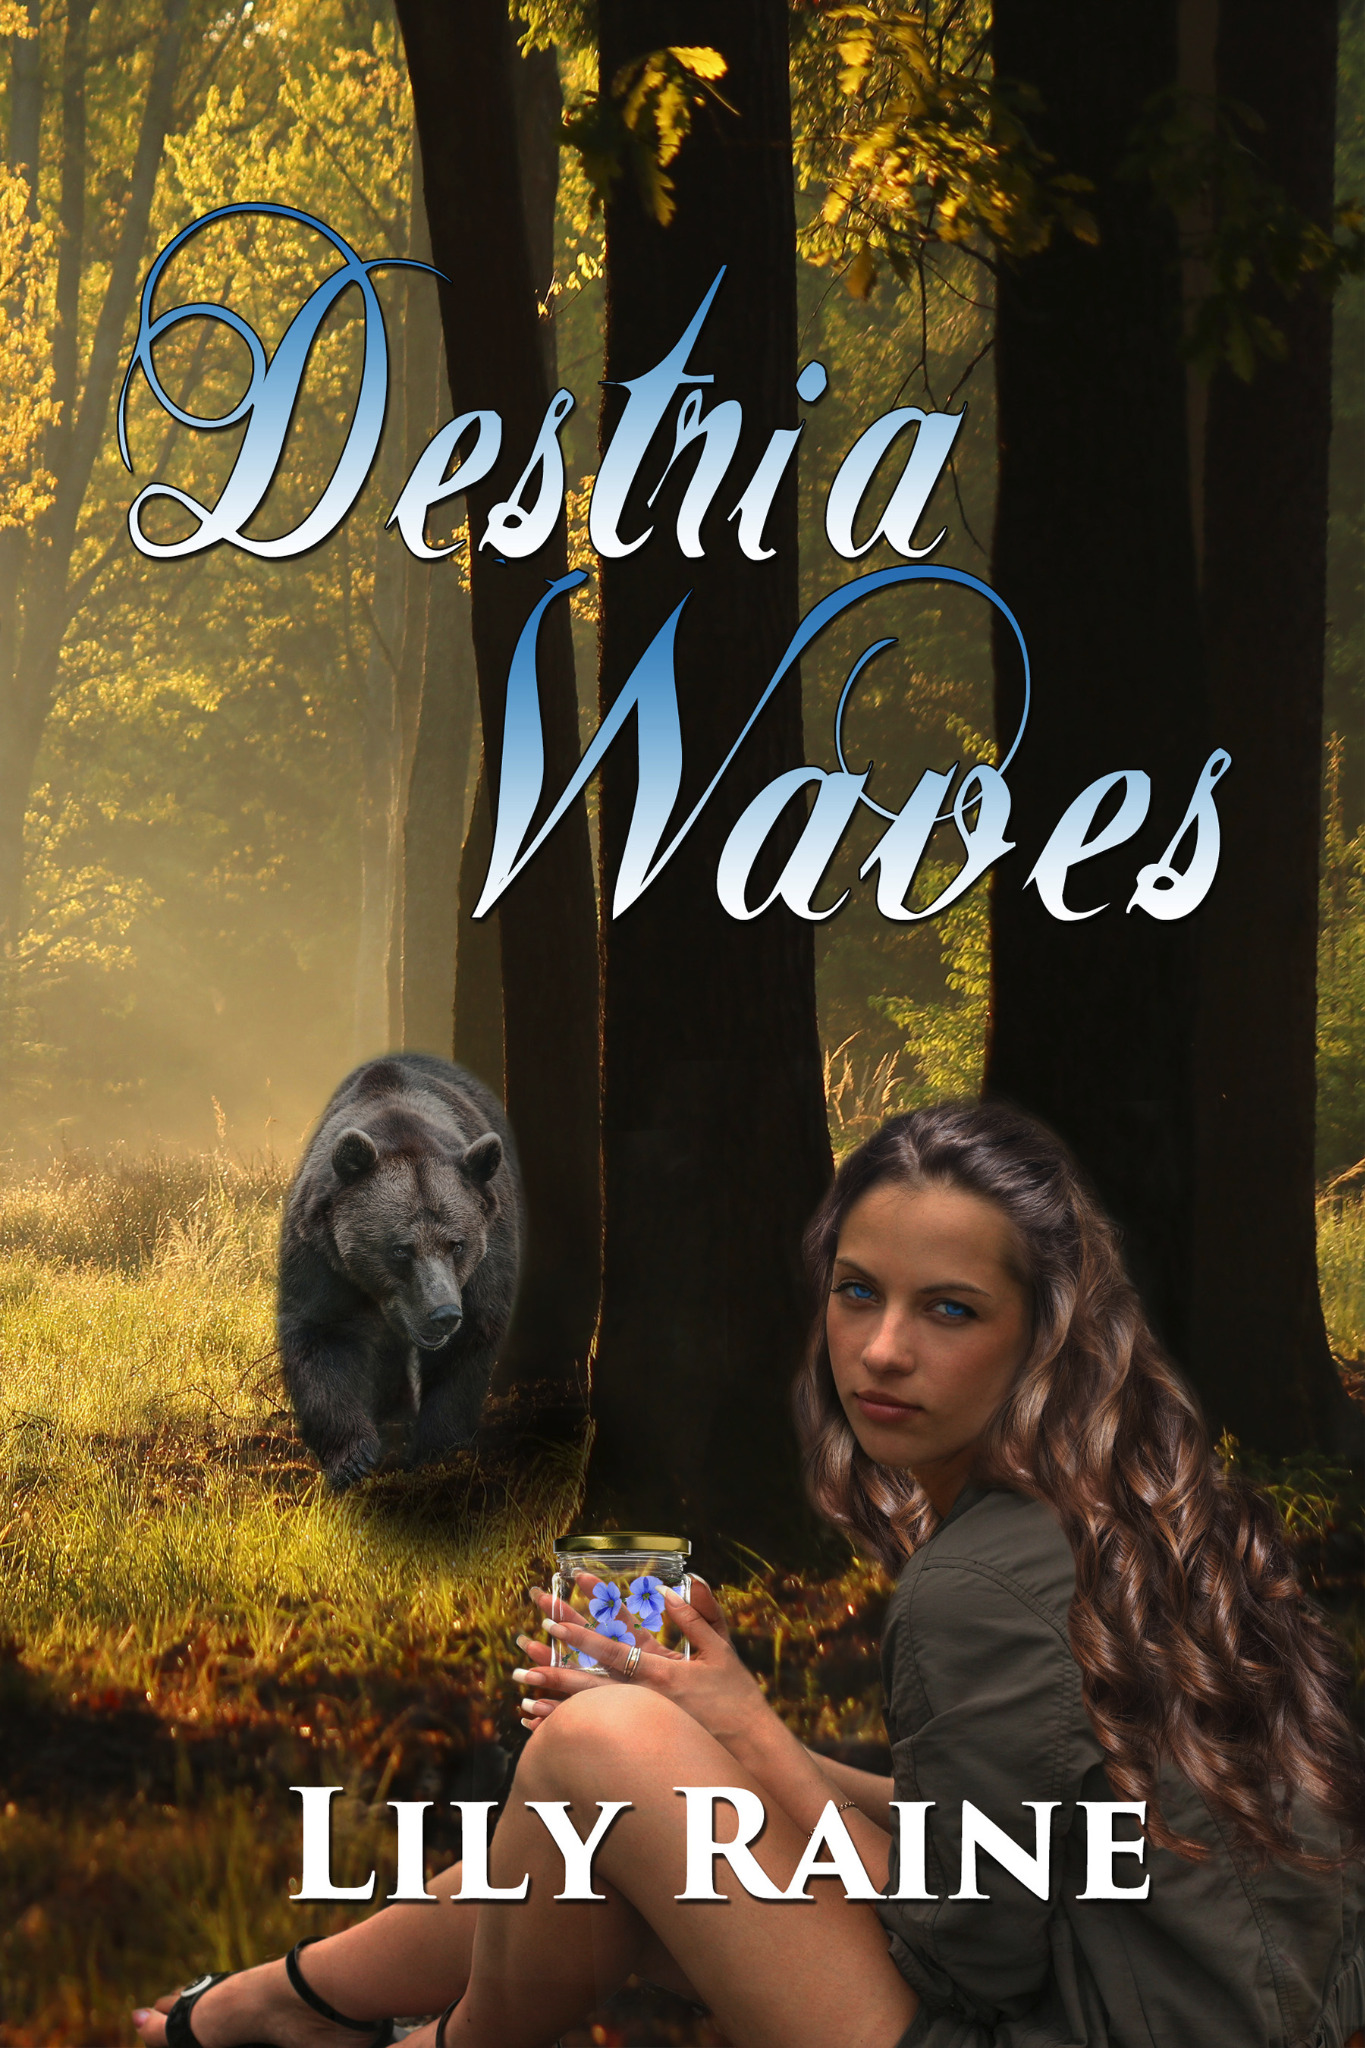 The Destria Waves - The Anastasia Series Book 1